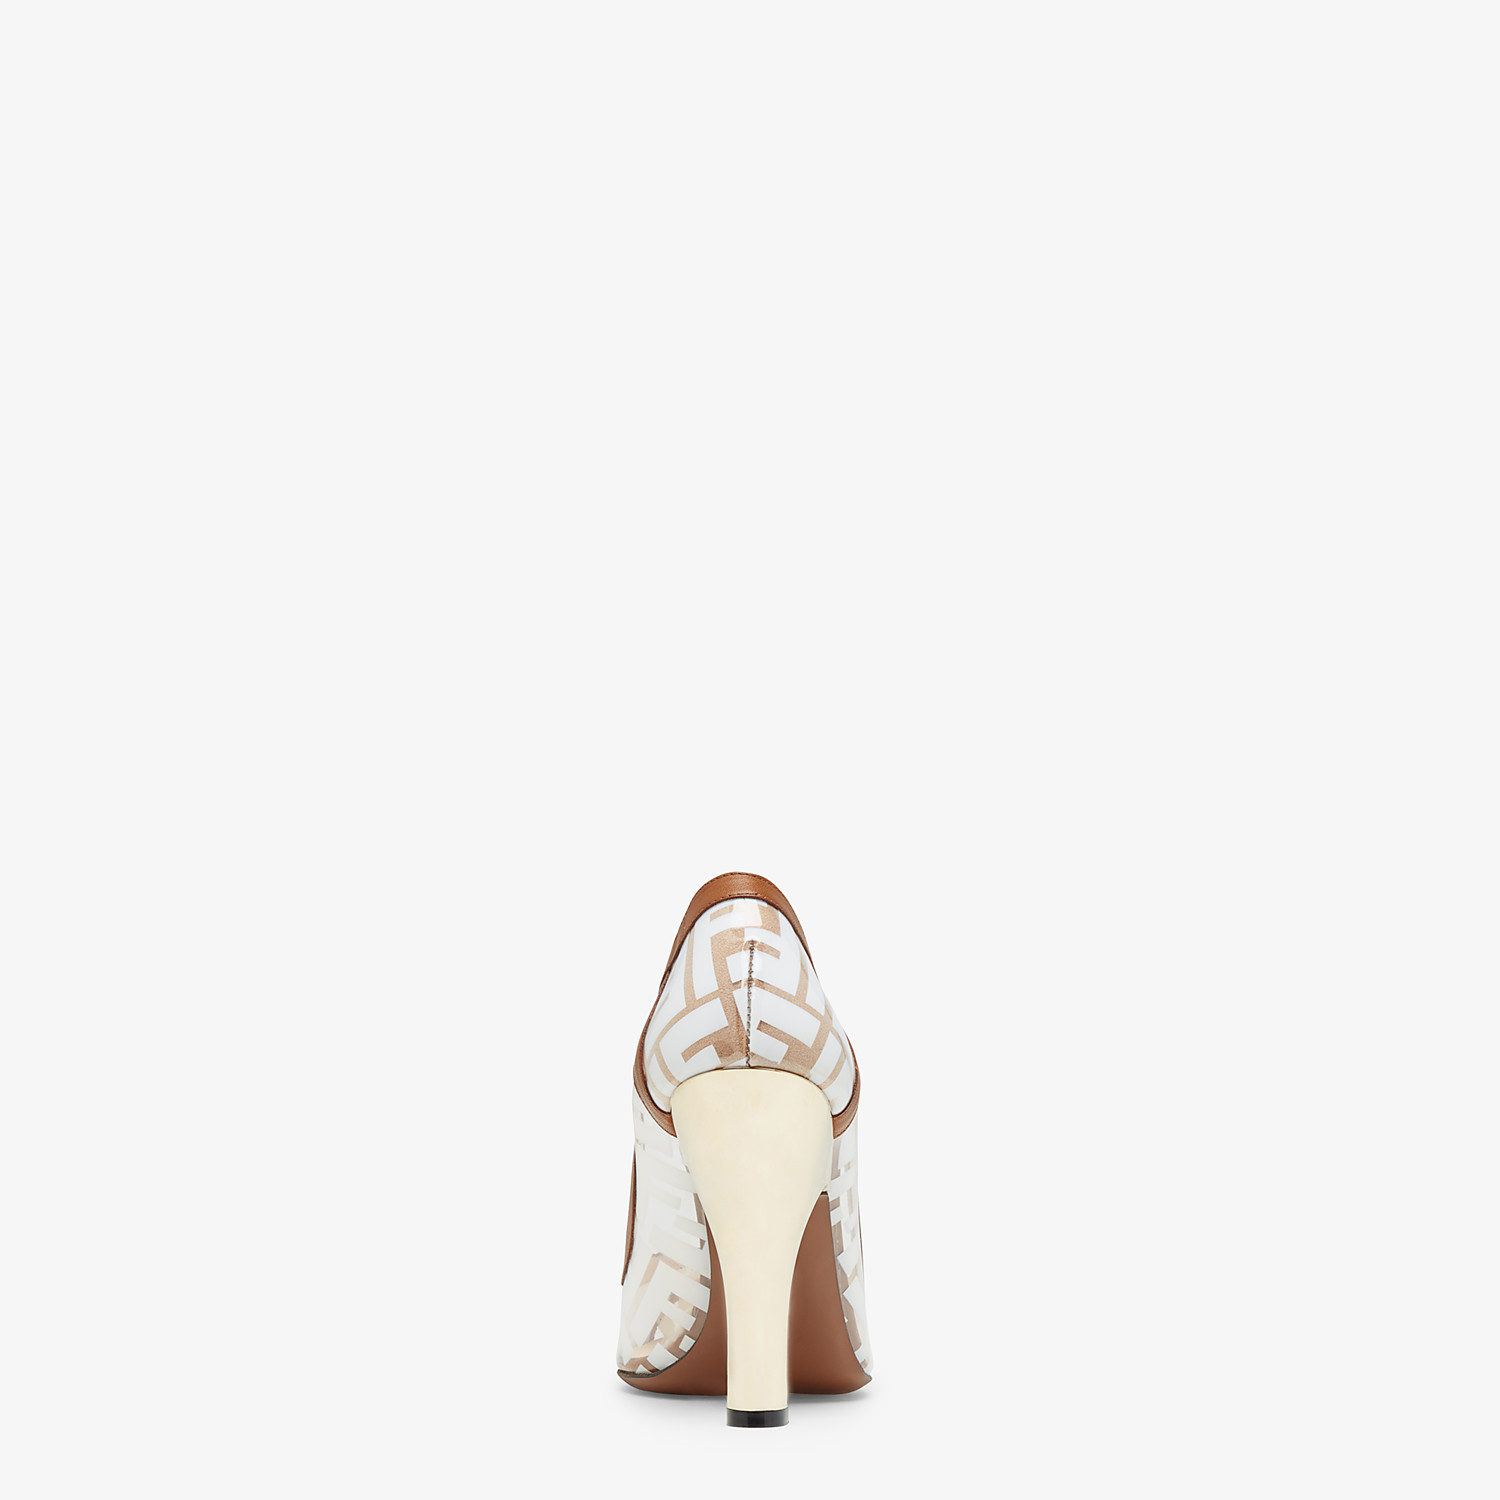 FENDI COURT SHOES - PU and white leather court shoes - view 3 detail